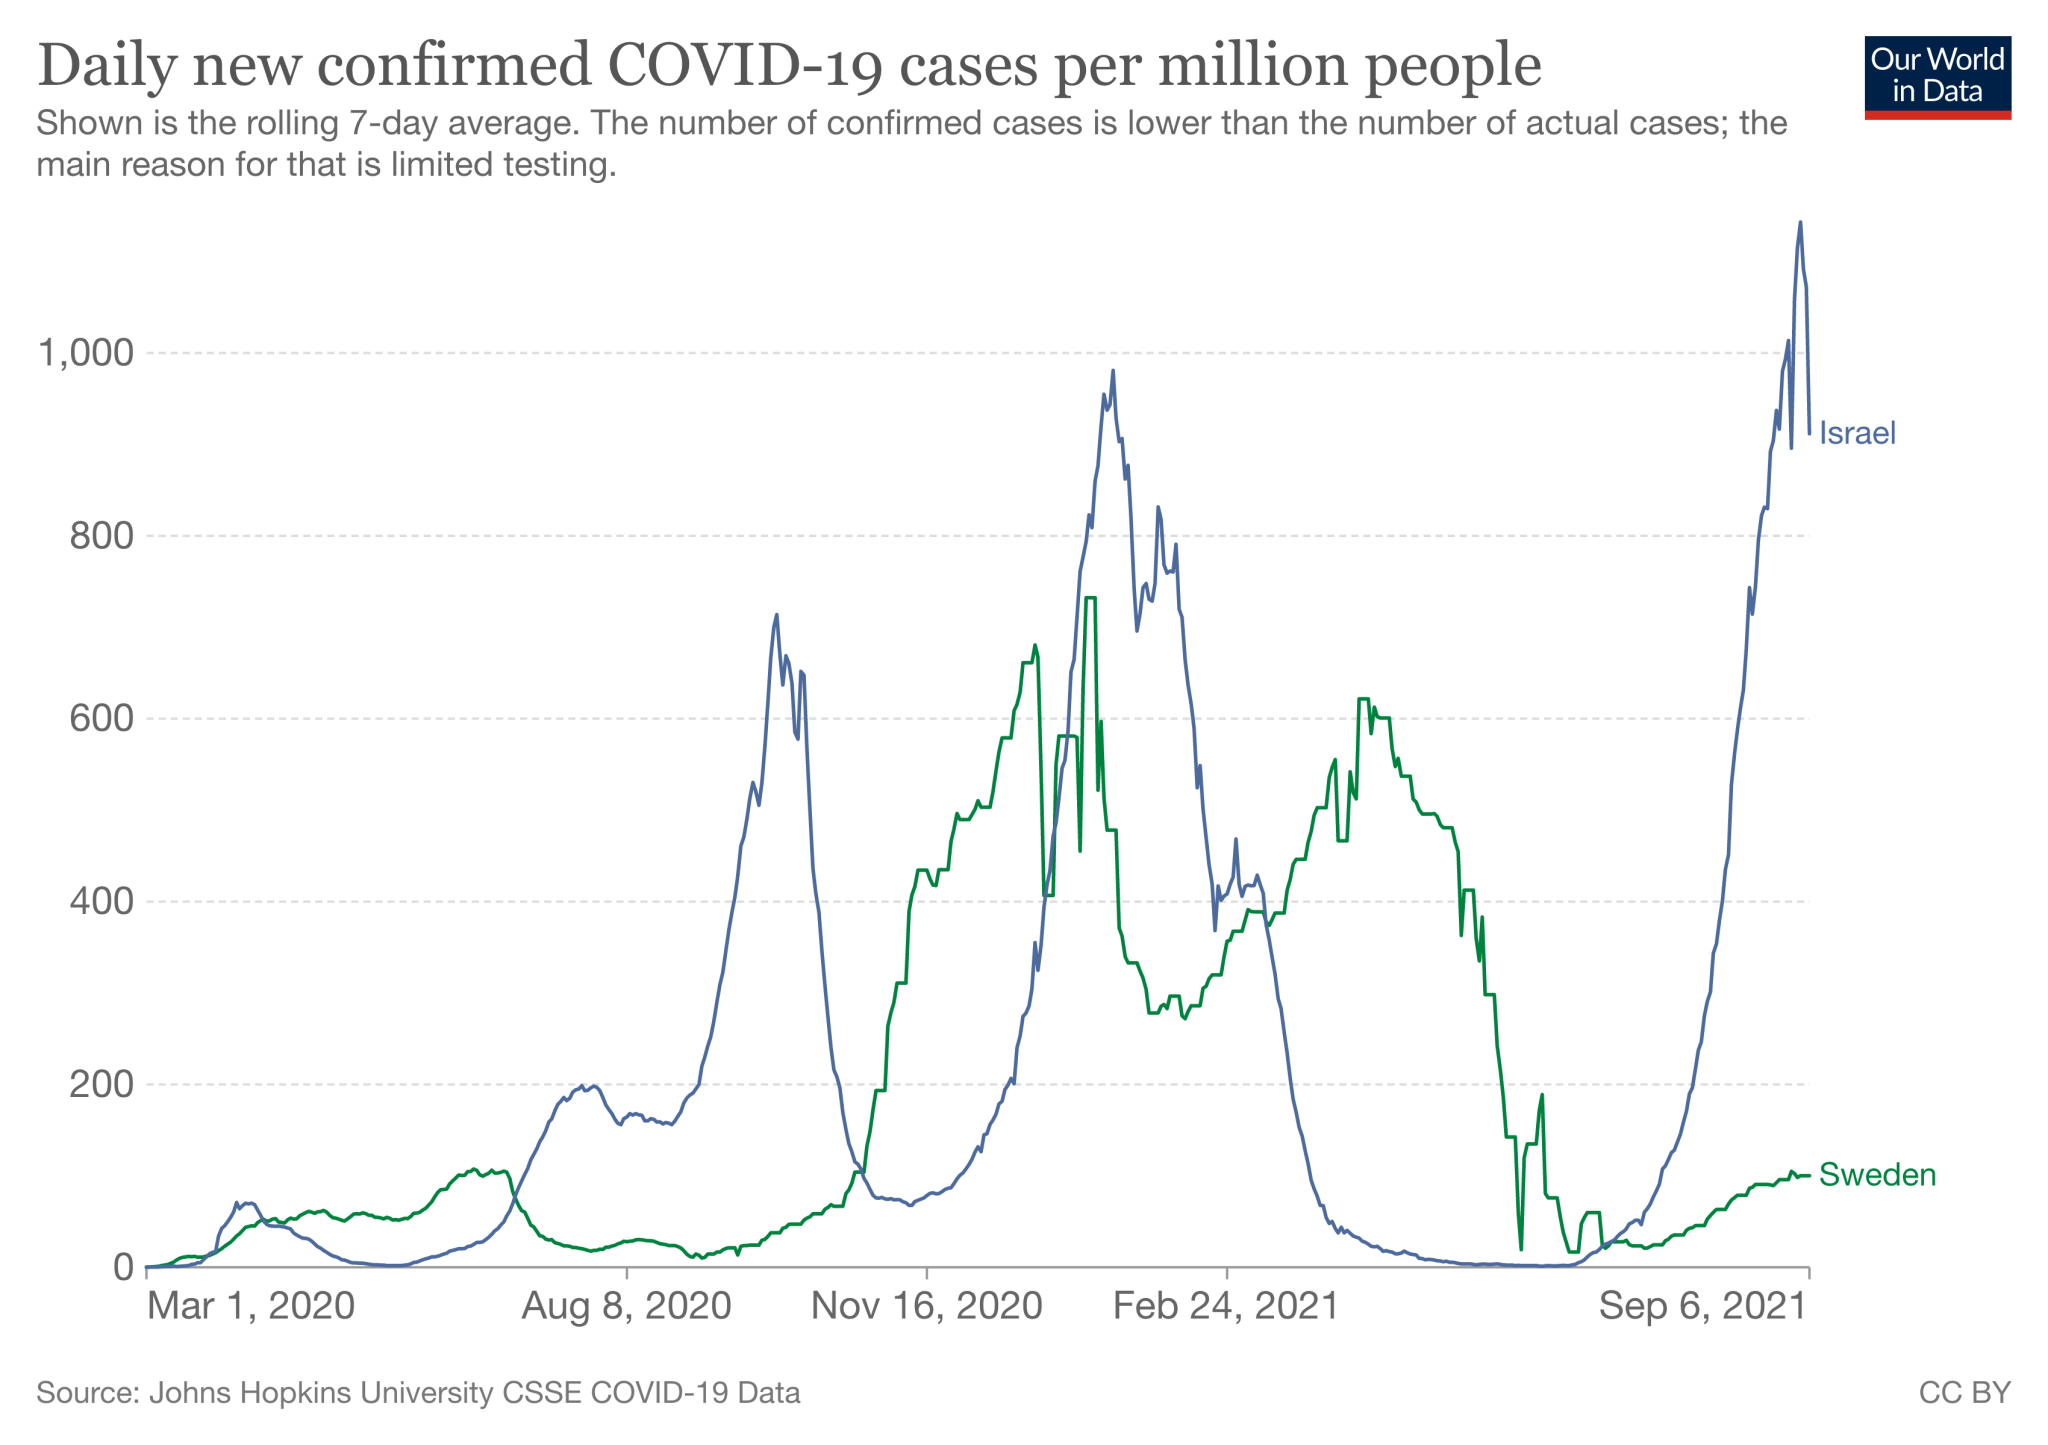 Covid-19 cases in Sweden and Israel (average of seven days per million inhabitants, March 2020 - September 2021)